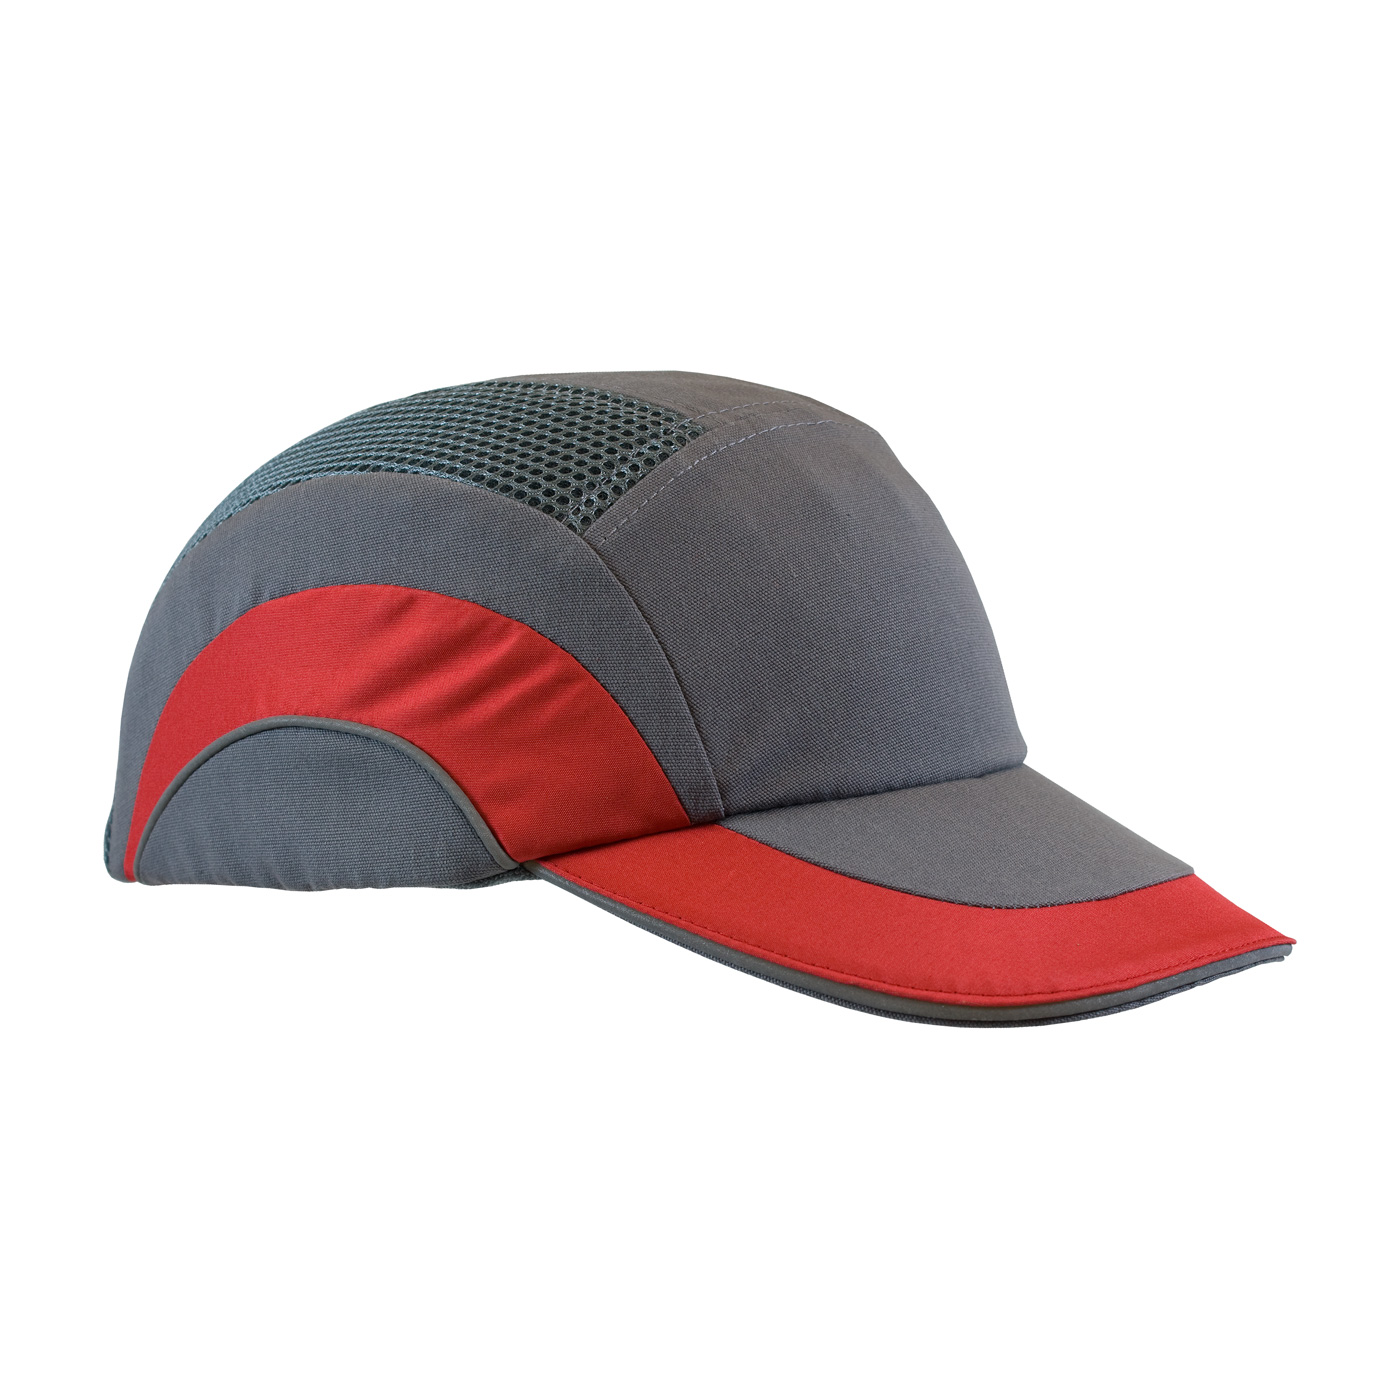 5064a7321997e HardCap A1+™ Baseball Style Bump Cap with HDPE Protective Liner and  Adjustable Back. Gray